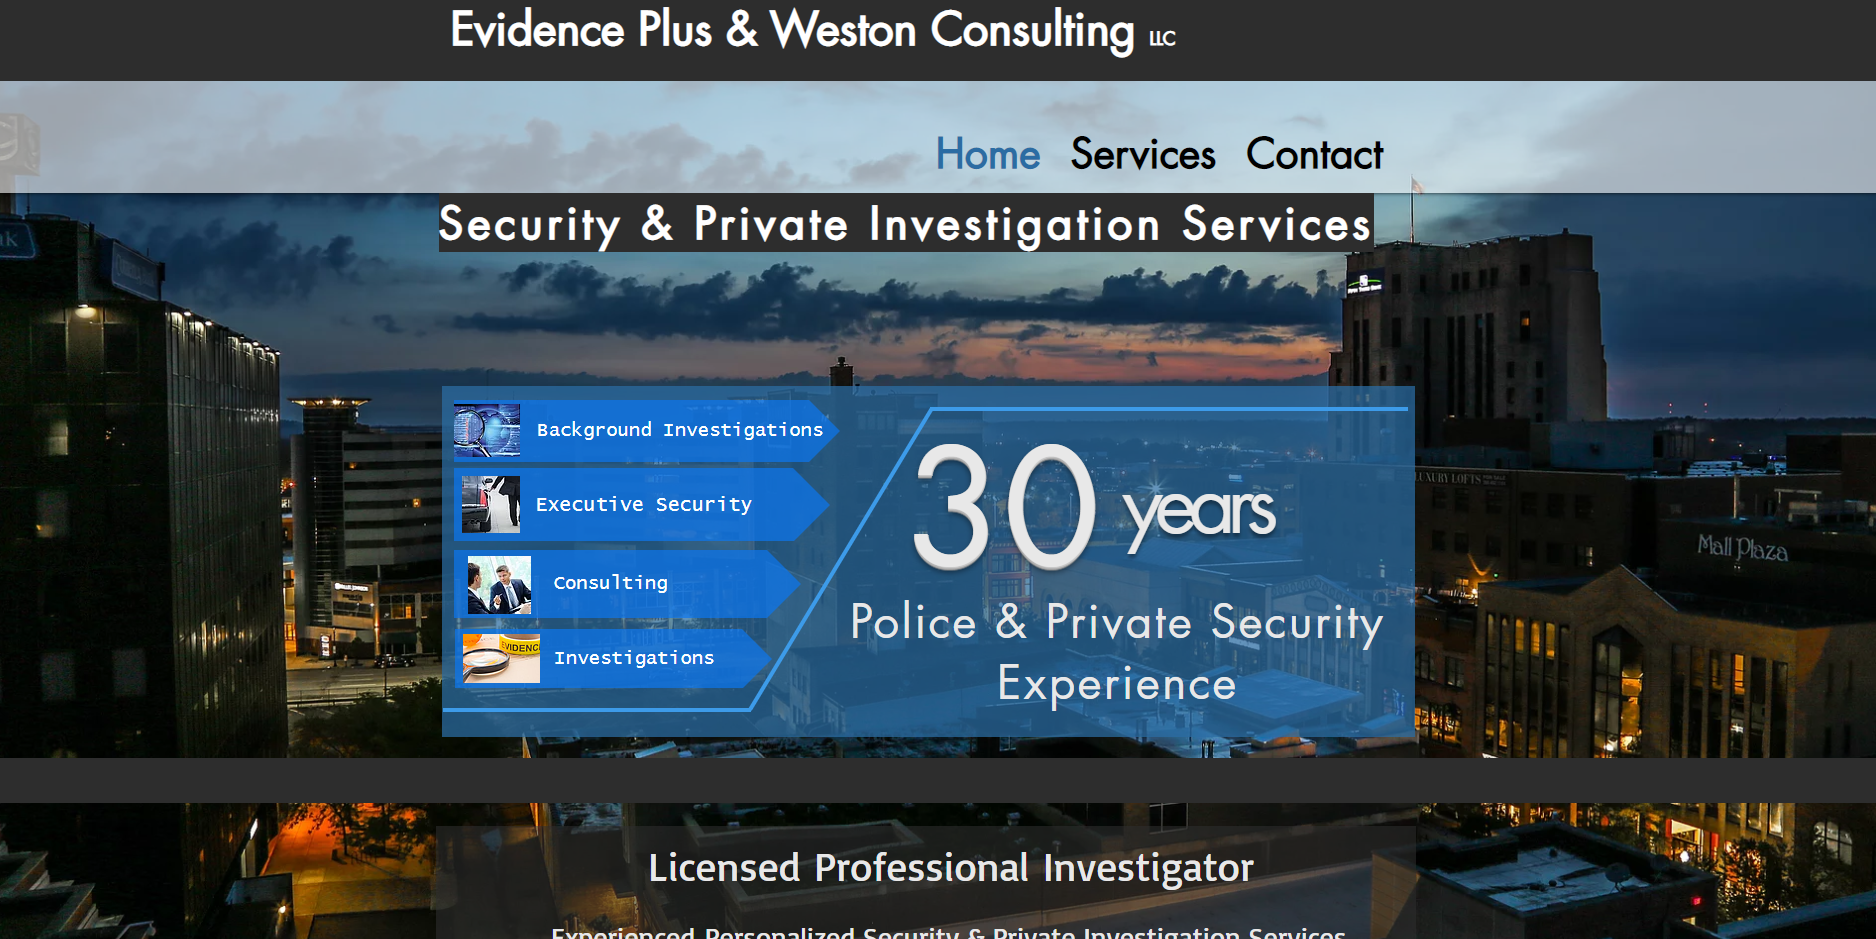 Evidence Plus & Weston Consulting.png